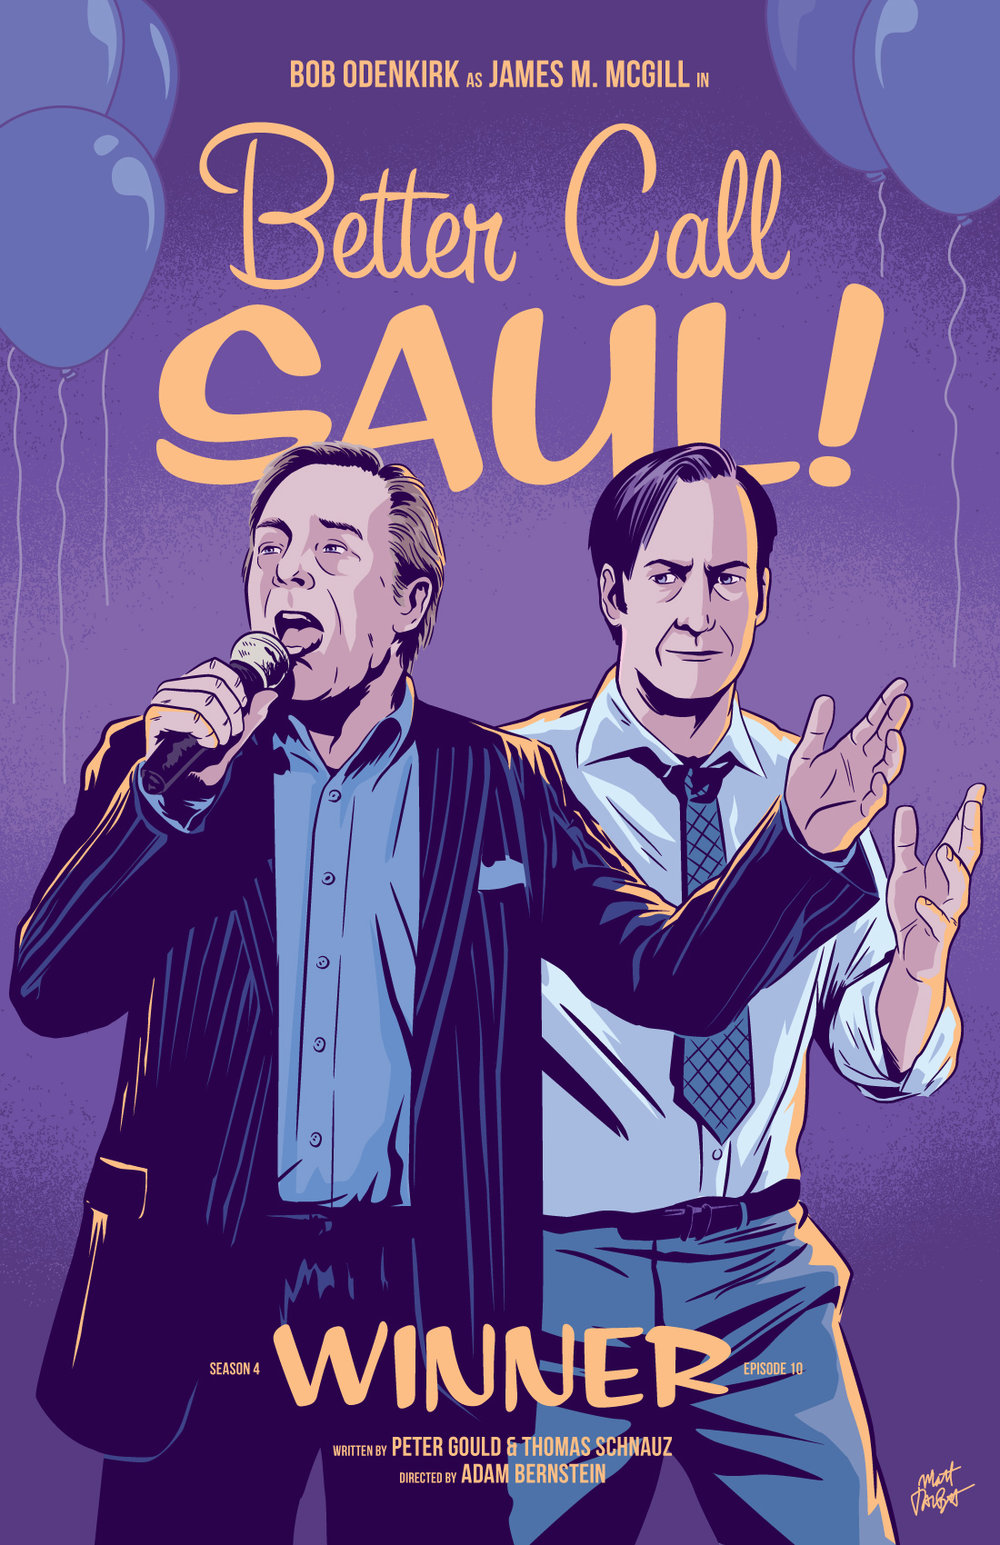 Better Call Saul season 4 episode 10, Winner, Poster by Matt Talbot